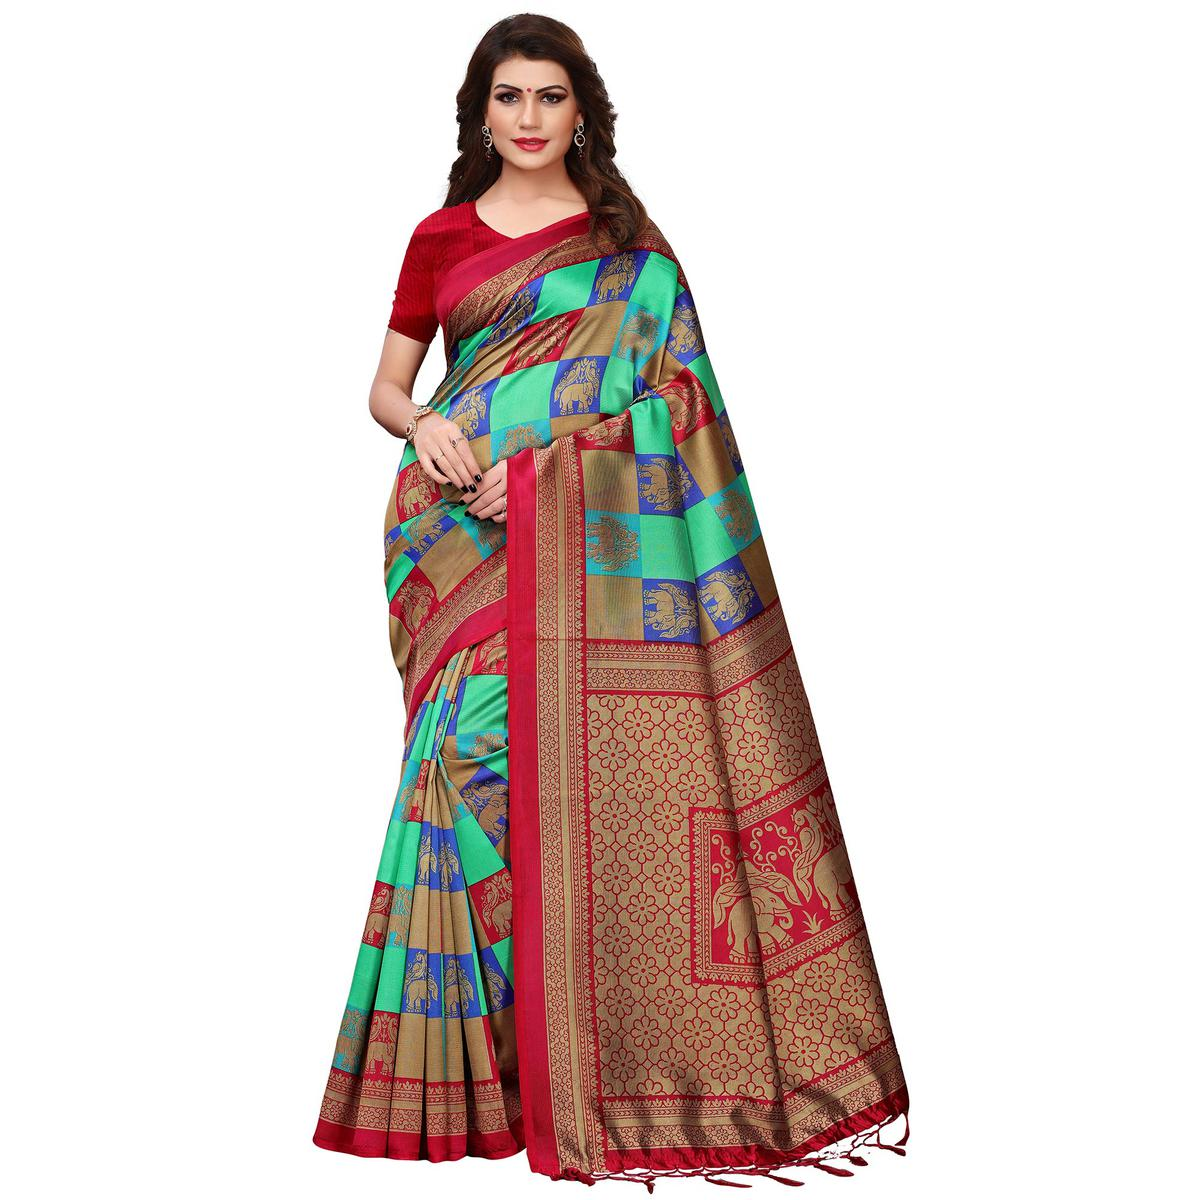 Pleasance Red-Turquoise Green Colored Festive Wear Printed Mysore Silk Saree